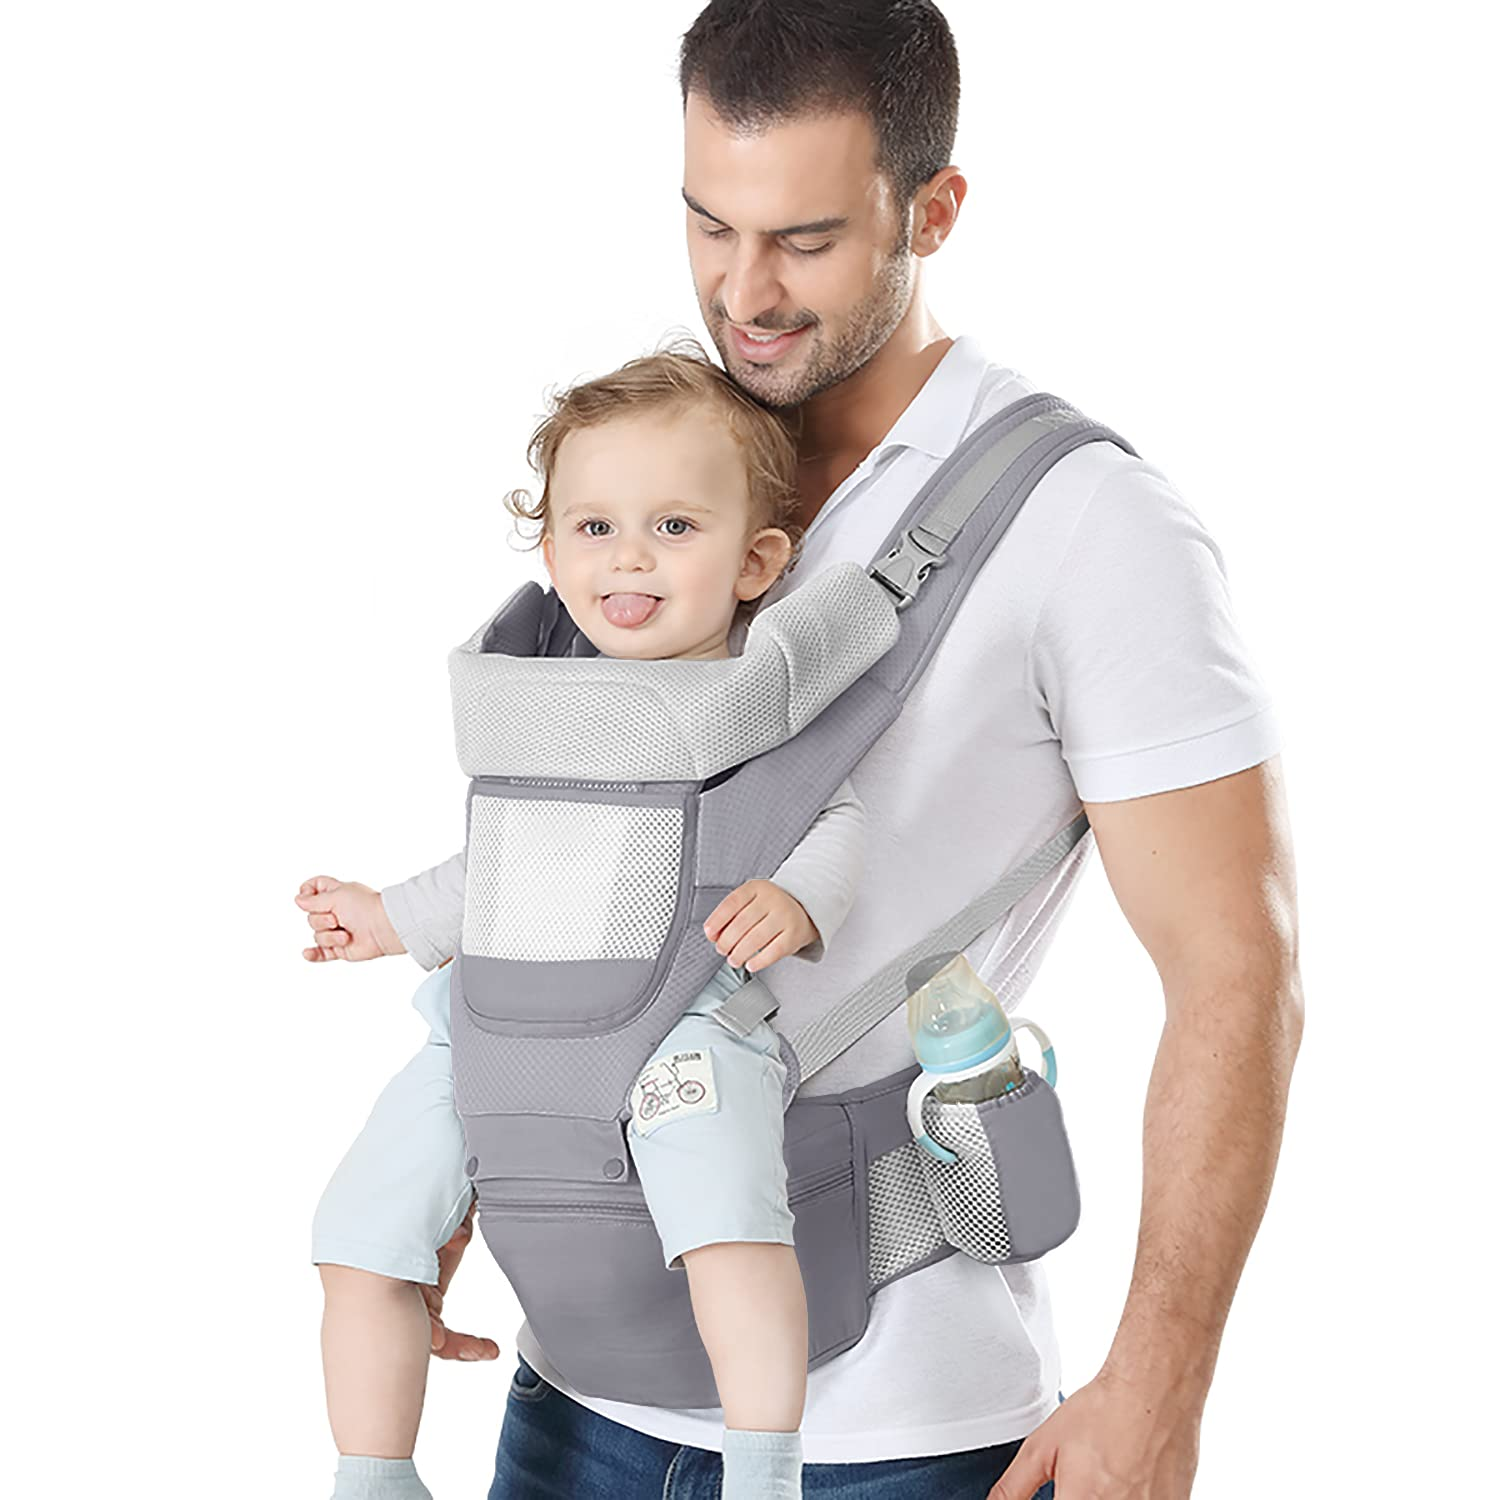 YSSKTC Baby Carrier with Lumbar Support - 360 All-Position Baby Wrap Carrier - 9-in-1 Front and Back Backpack Carrier for Baby, Toddler, Infant, Child, Newborn (7-66 Lb)… (Grey)